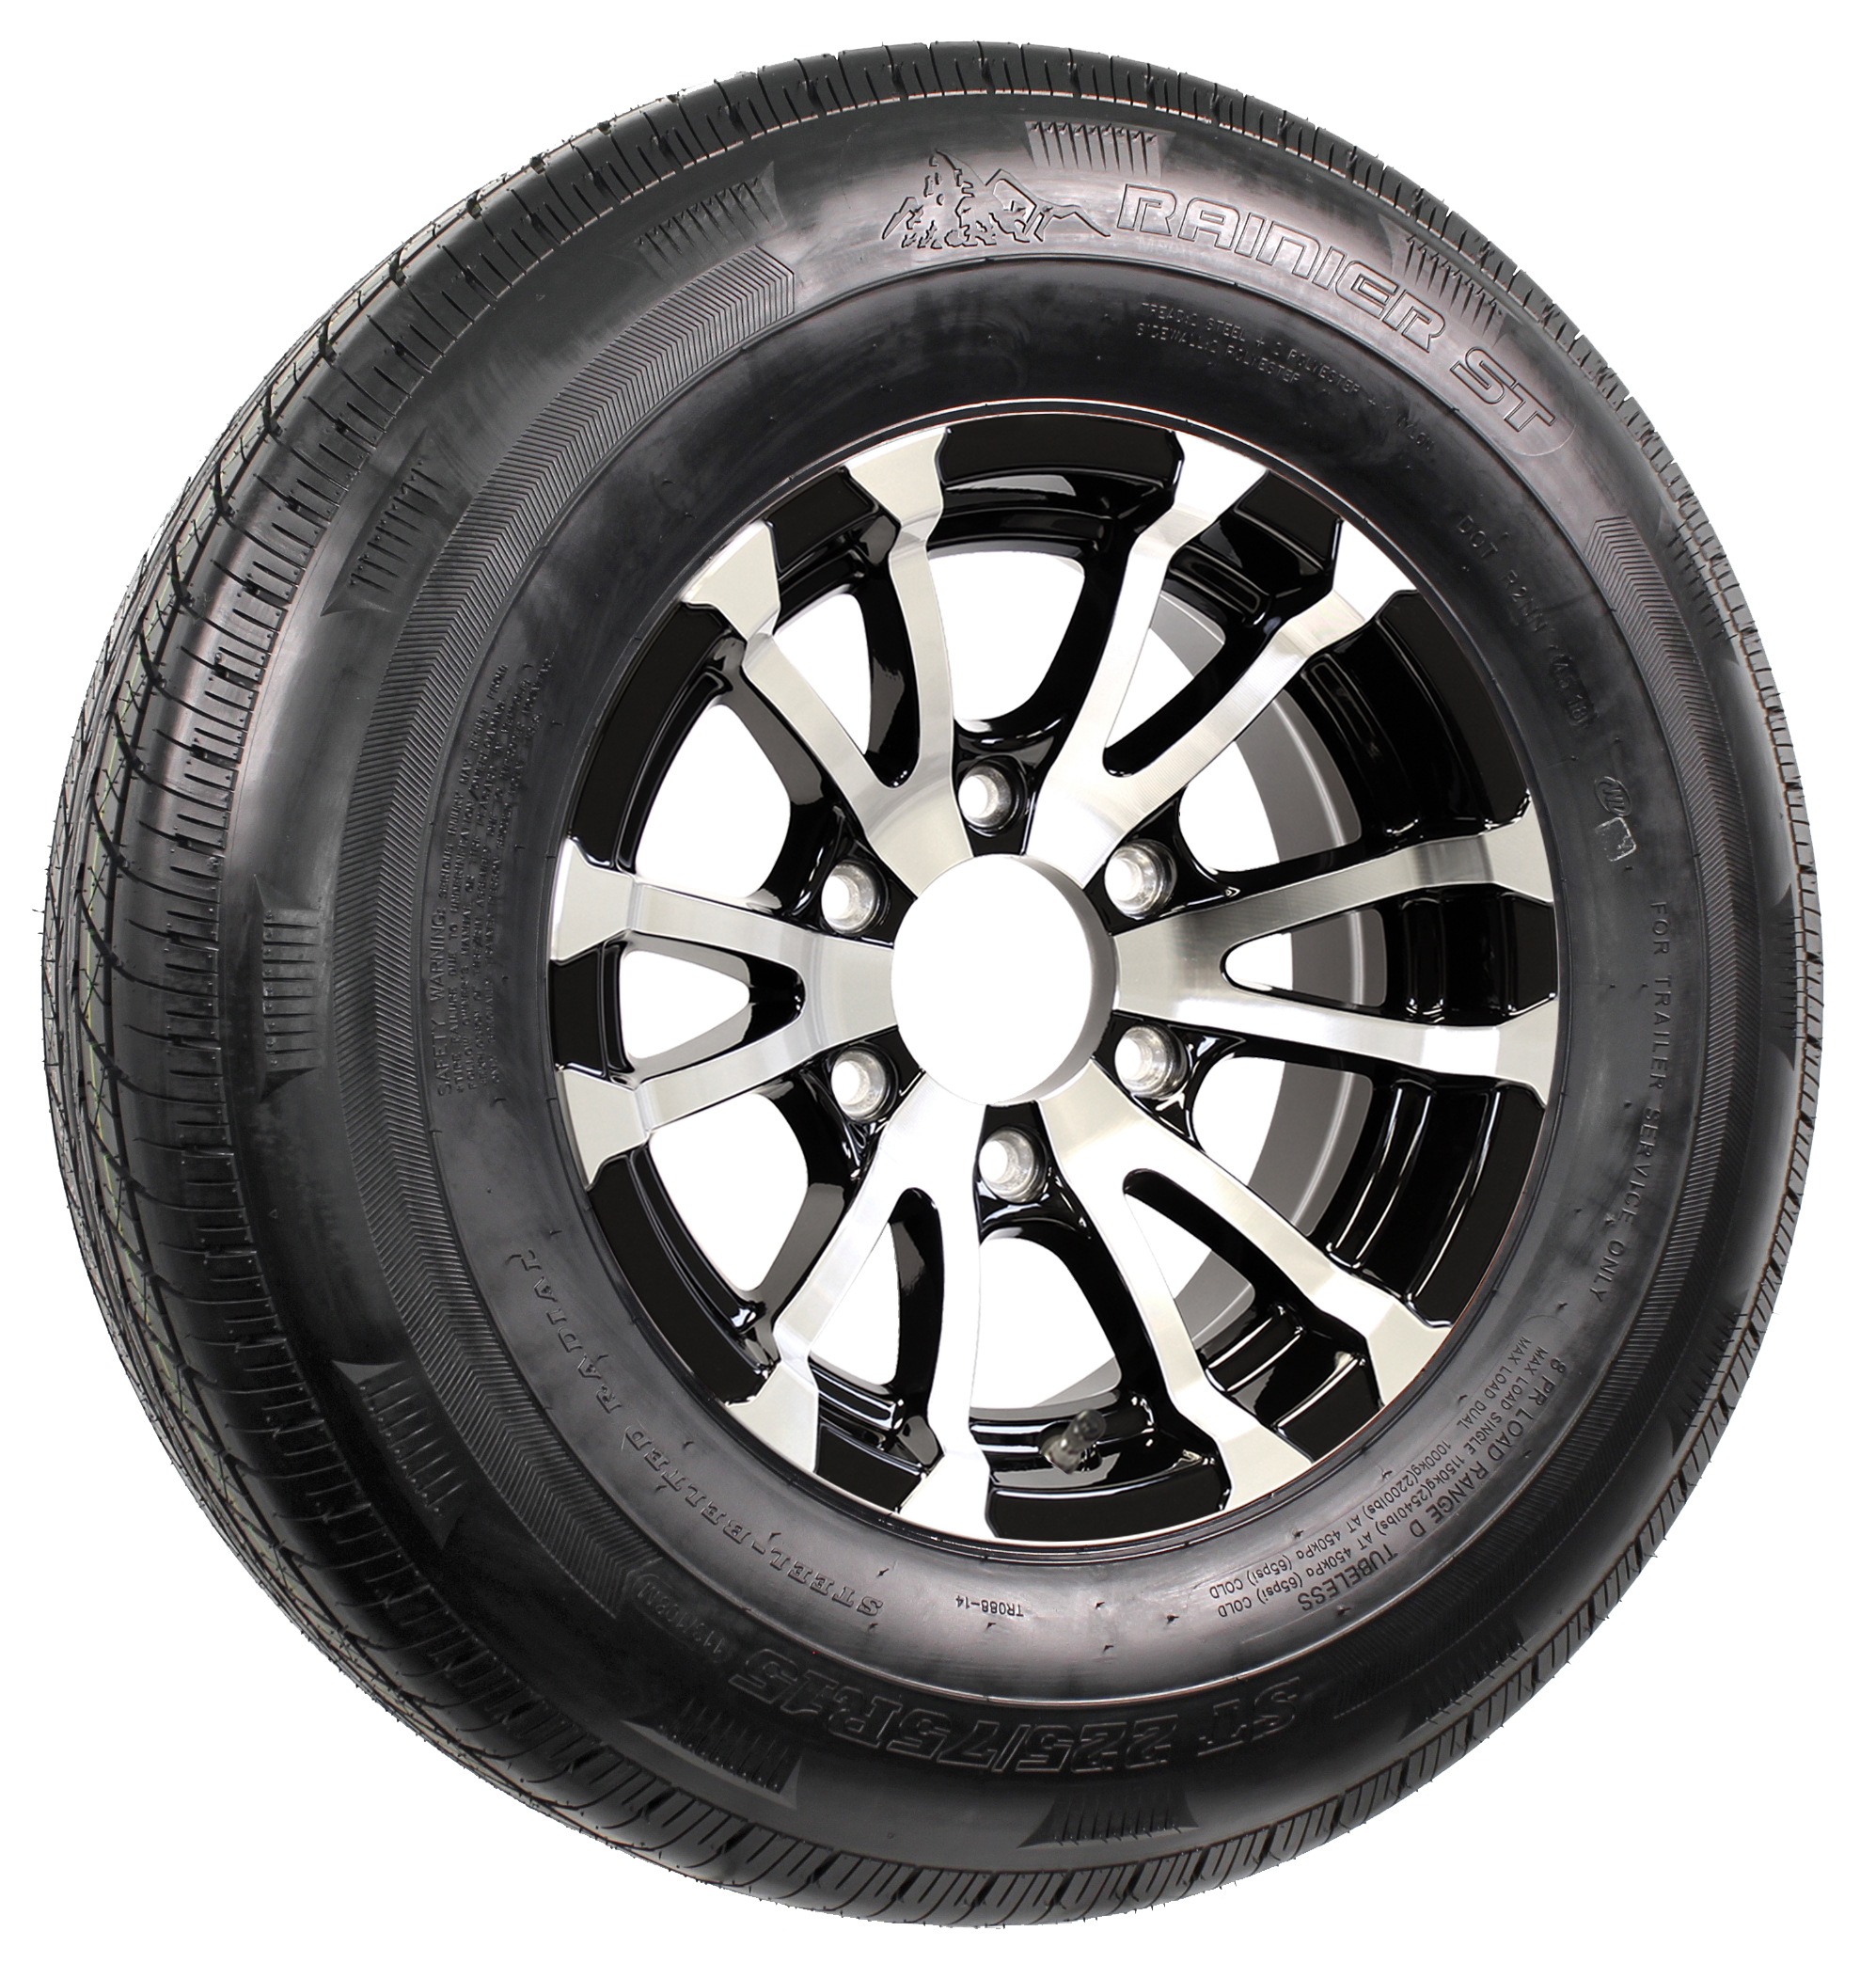 "Rainier ST225/75R15 LRE Radial Tire on 15"" 6-Lug Avalanche Black Aluminum Assembly Image"